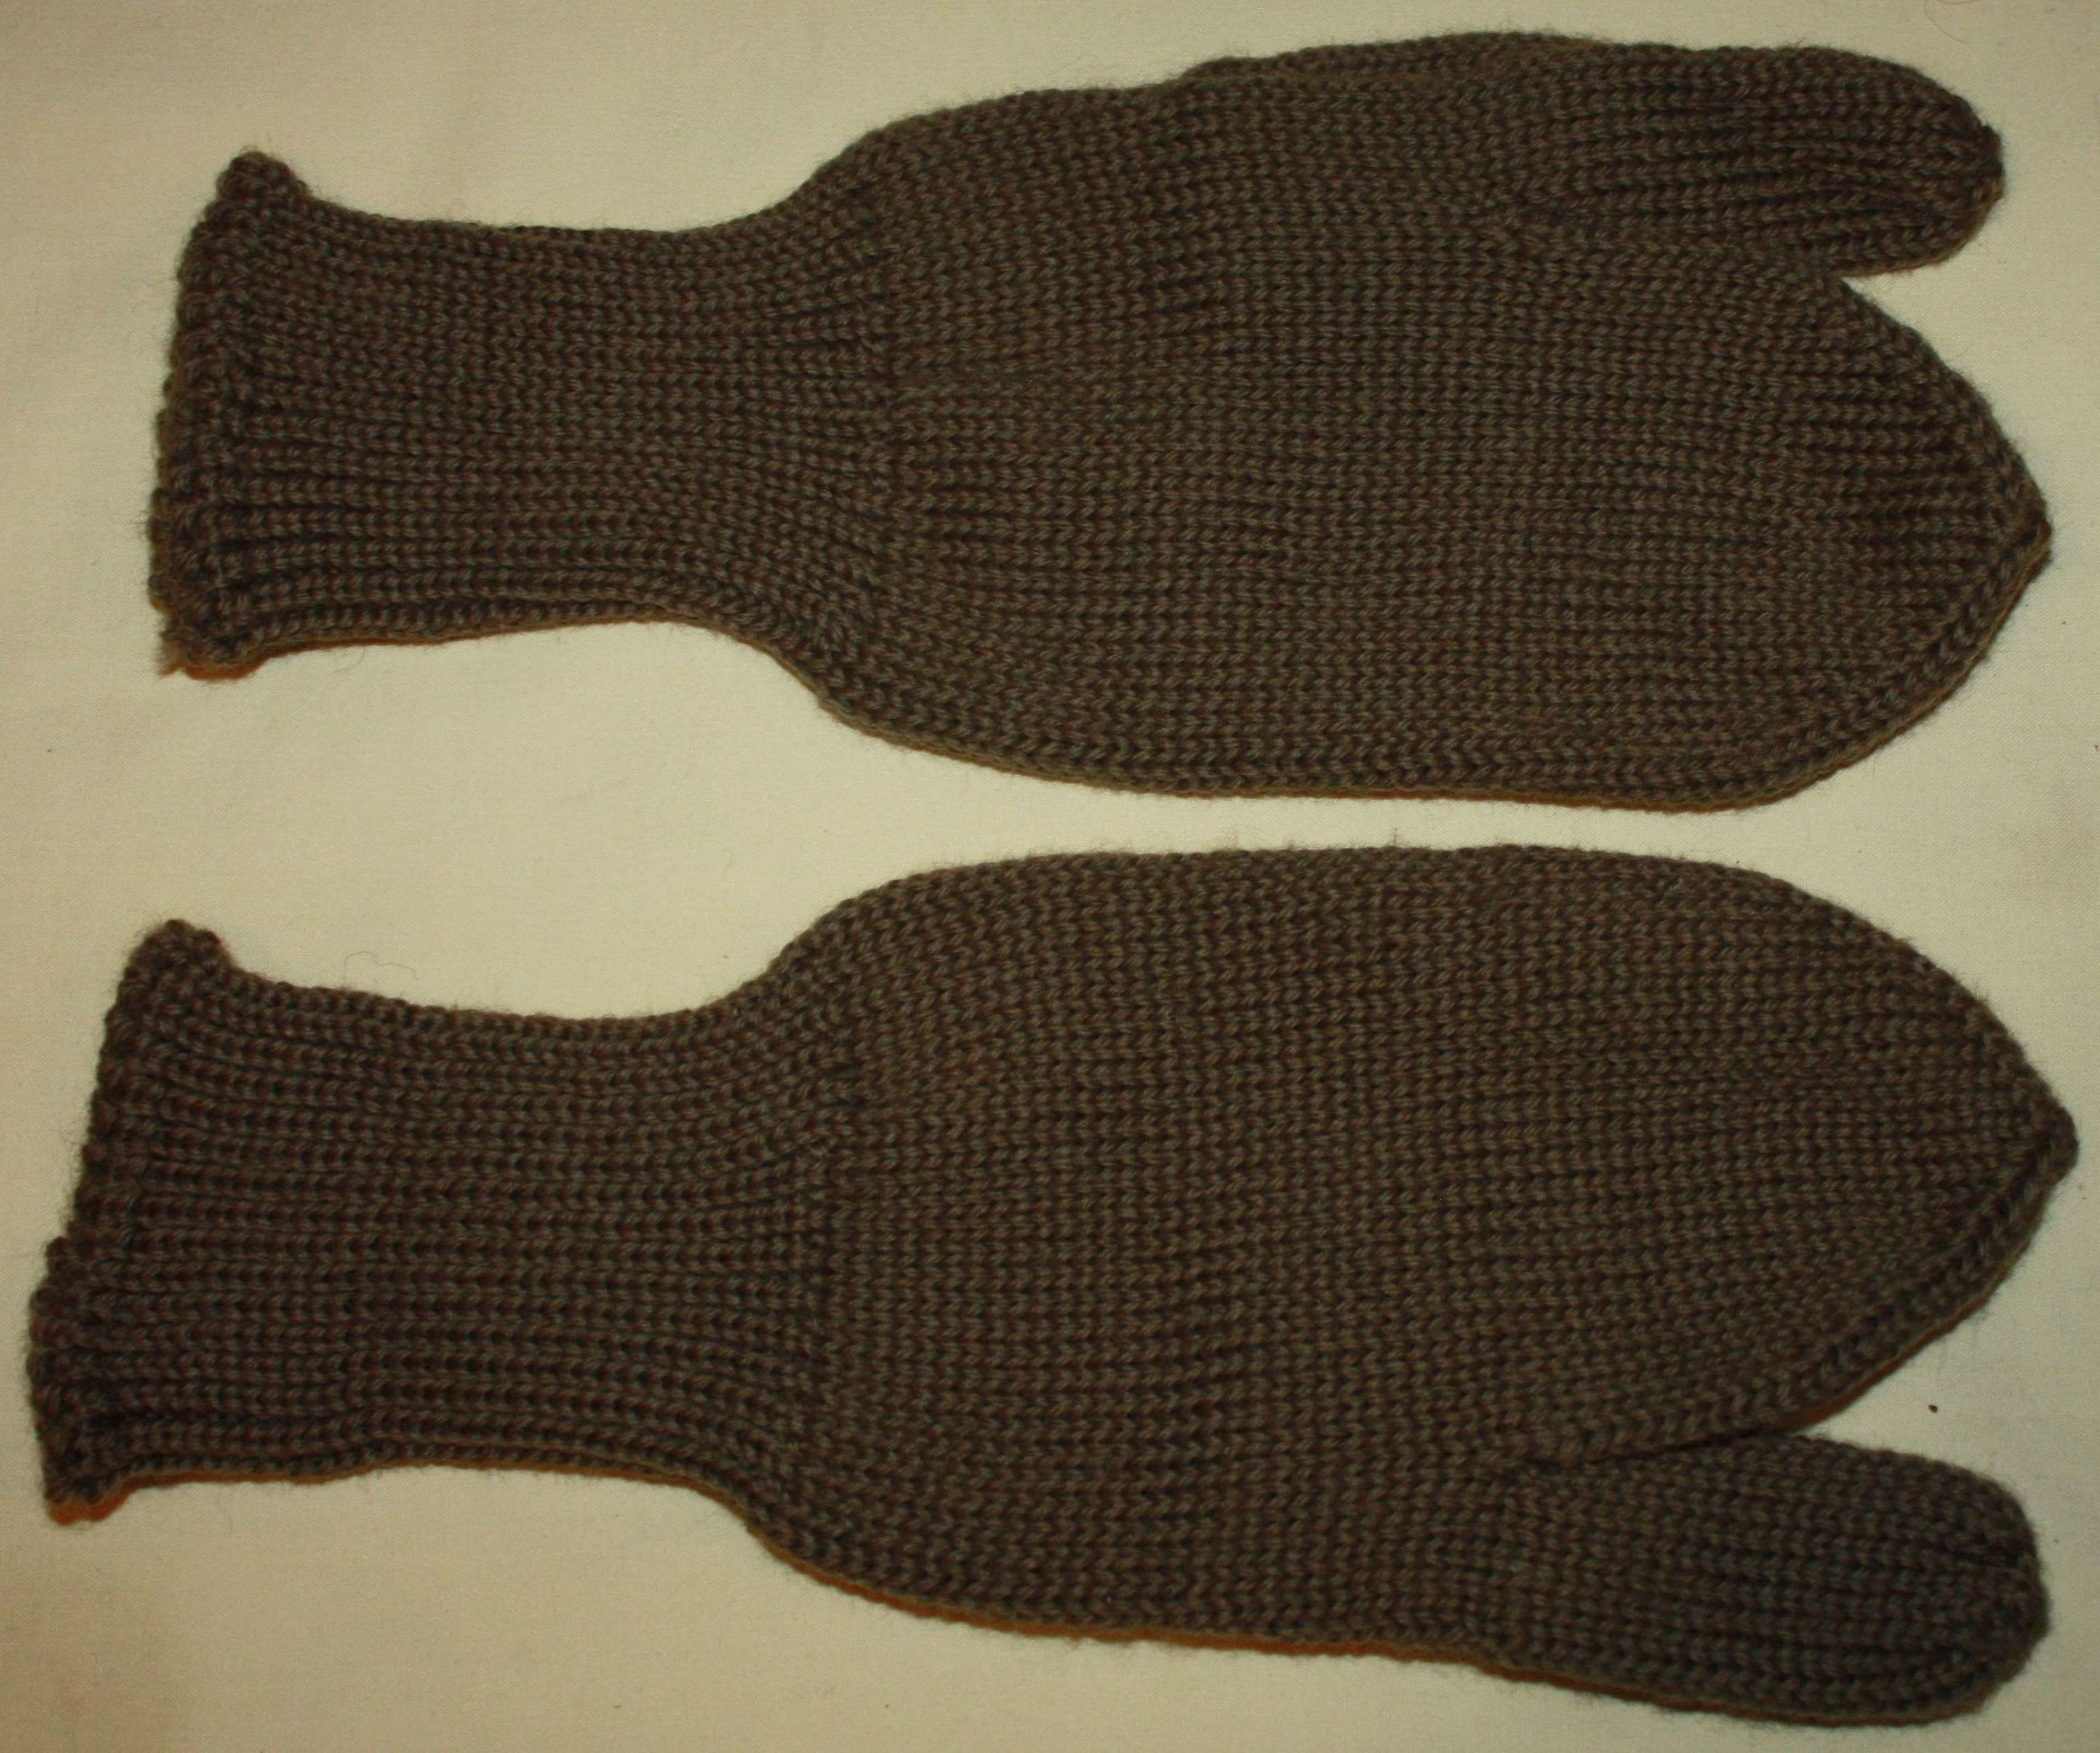 A PAIR OF WWII PERIOD WOOL MITTERNS